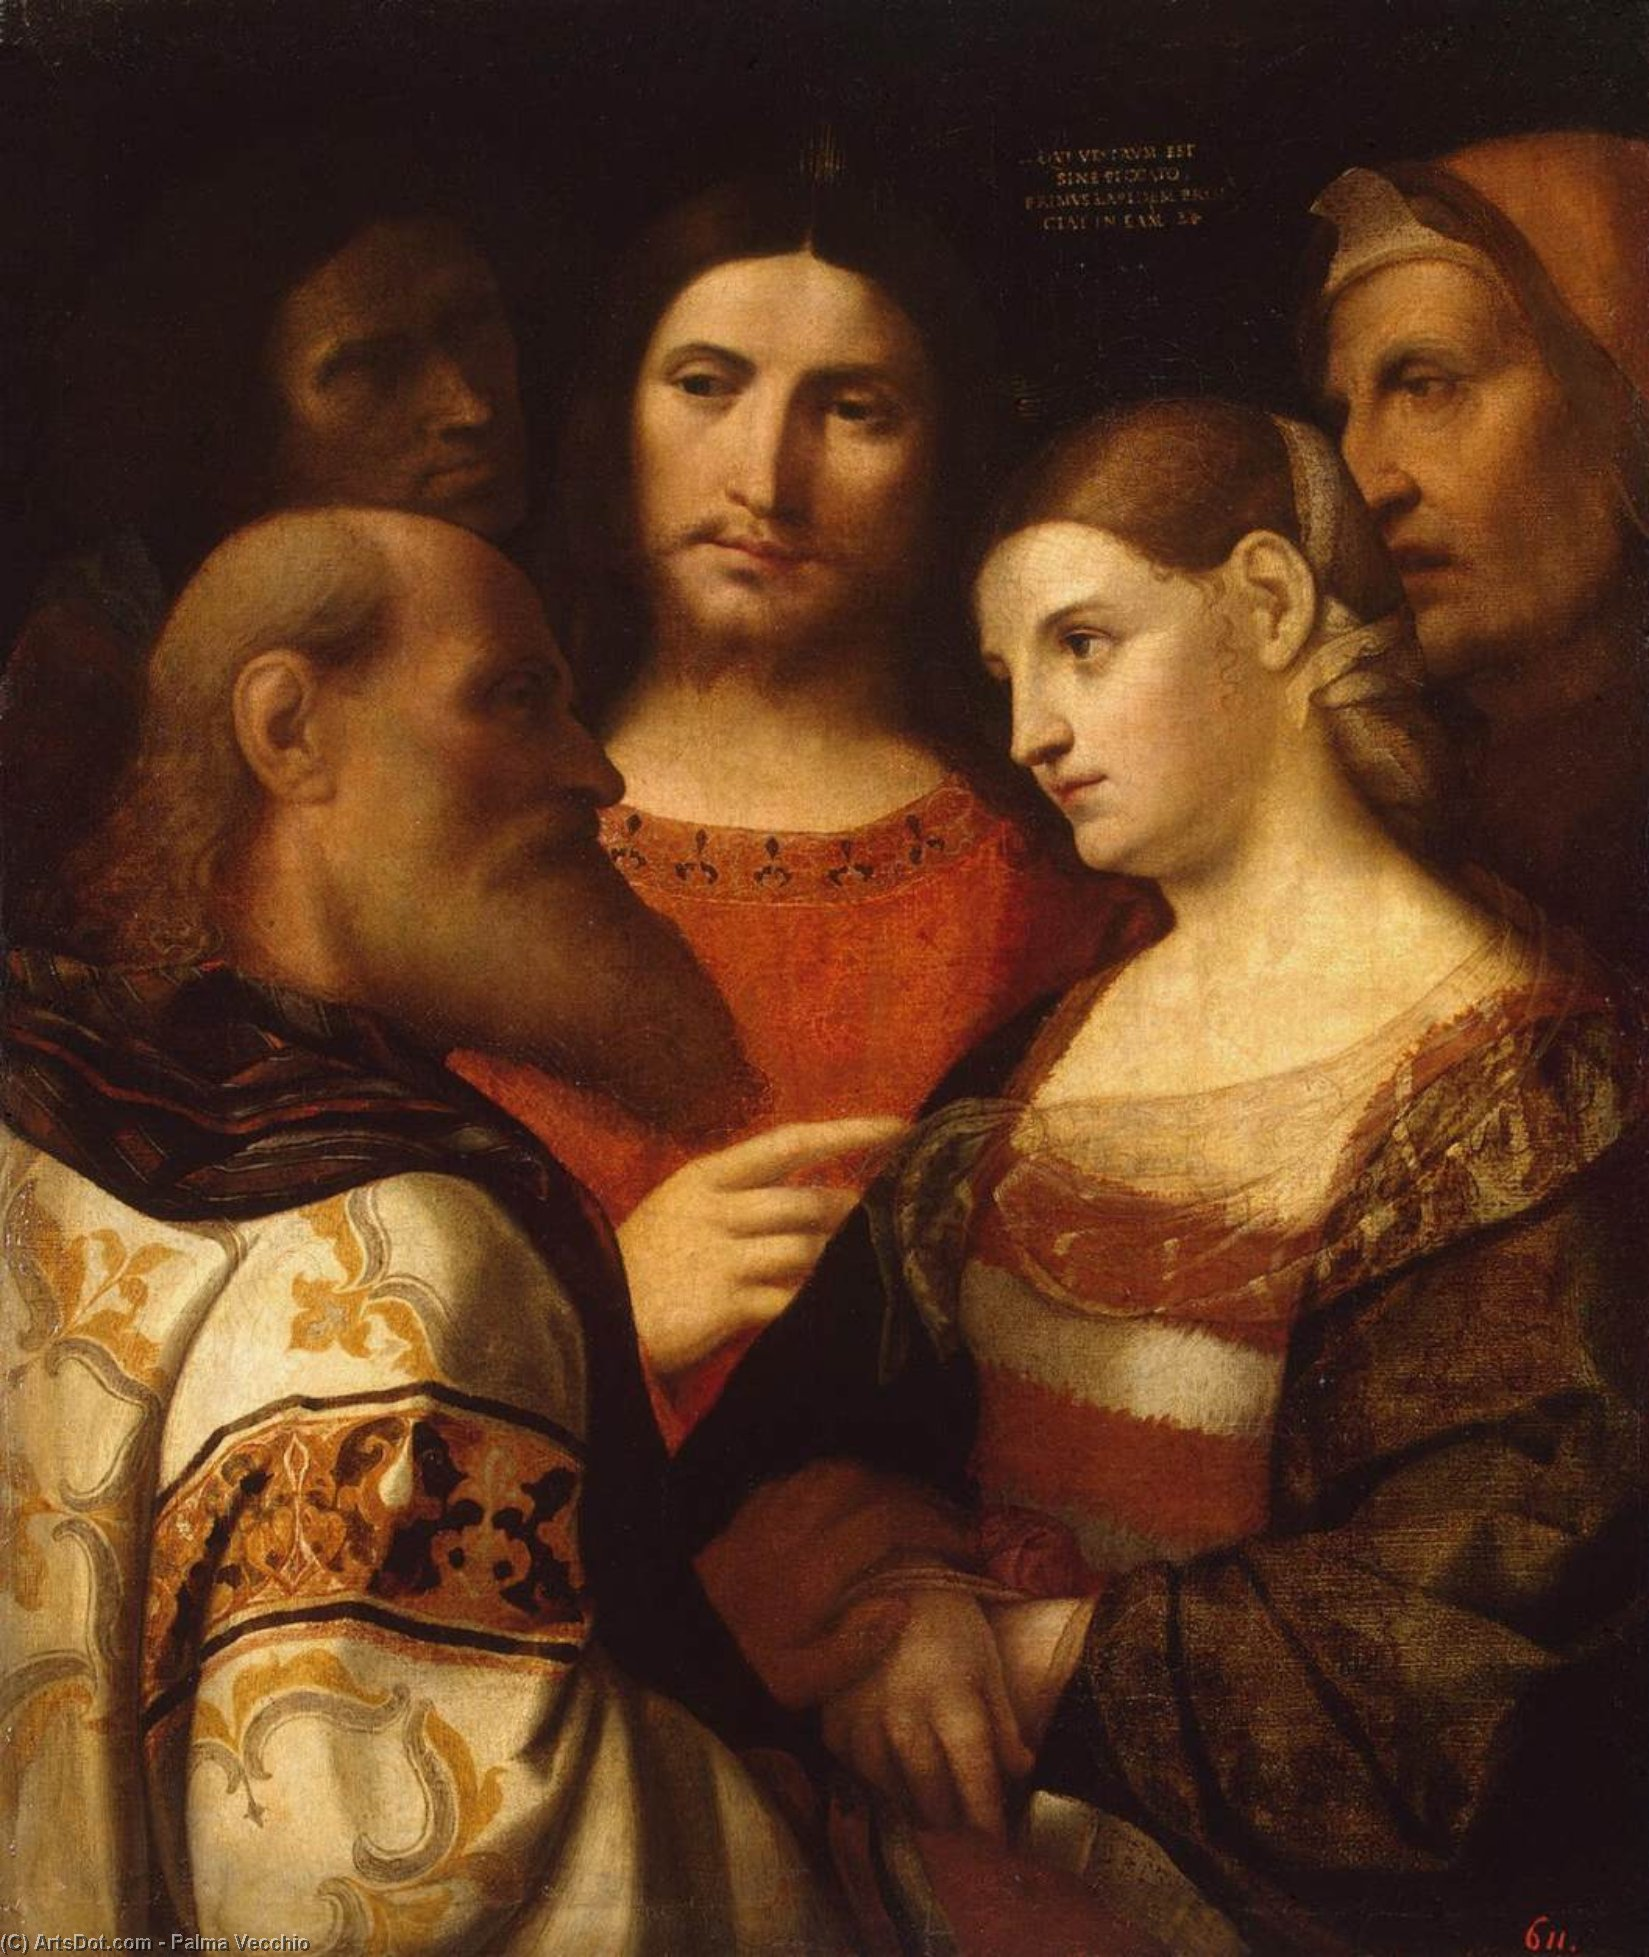 Wikioo.org - The Encyclopedia of Fine Arts - Painting, Artwork by Palma Vecchio - Christ and the Woman Taken in Adultery